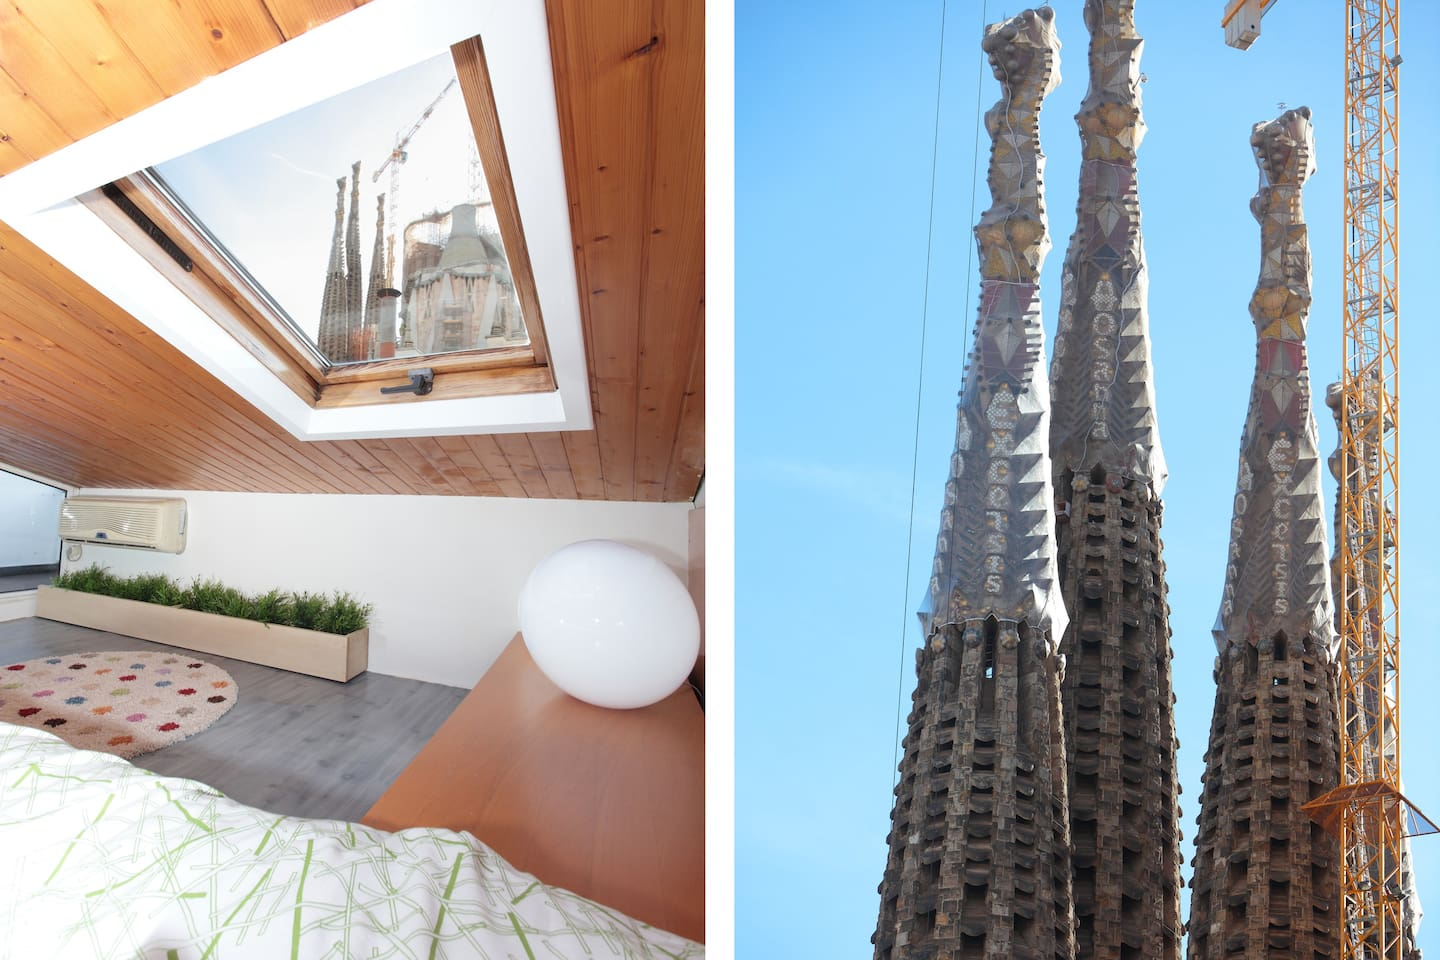 Unique views of Sagrada Familia in Barcelona